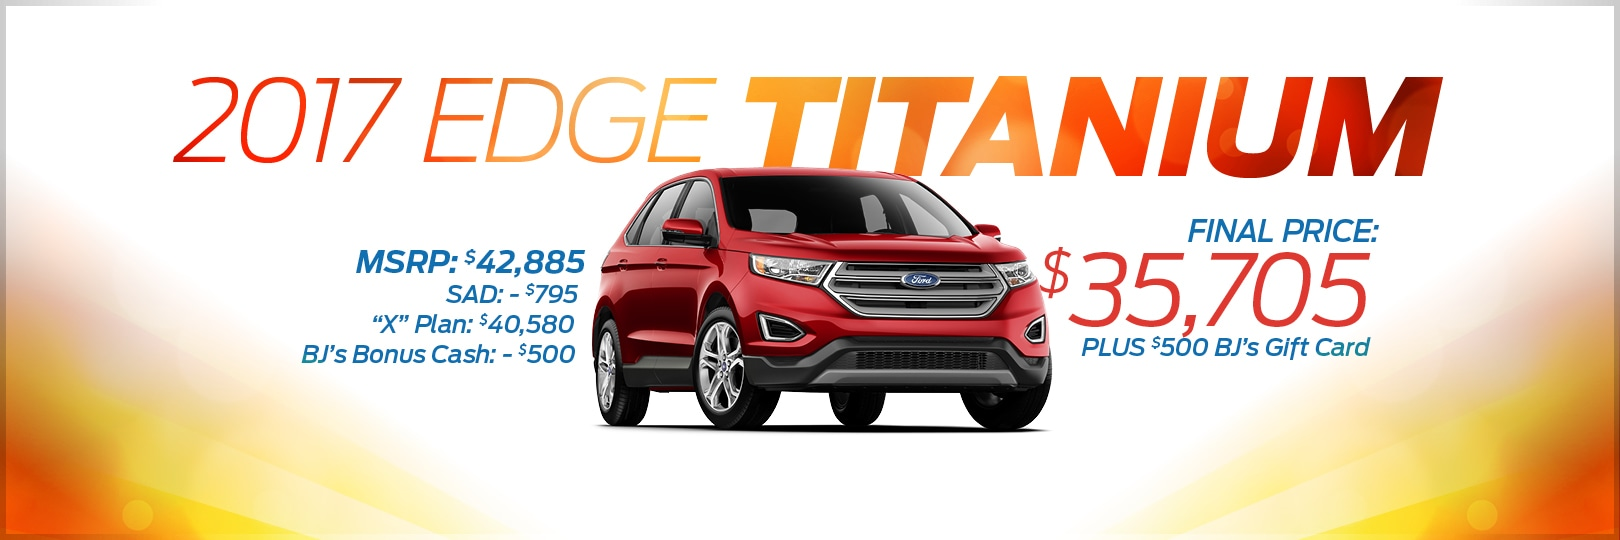 Take A Look At These Amazing Savings  Ford Edge